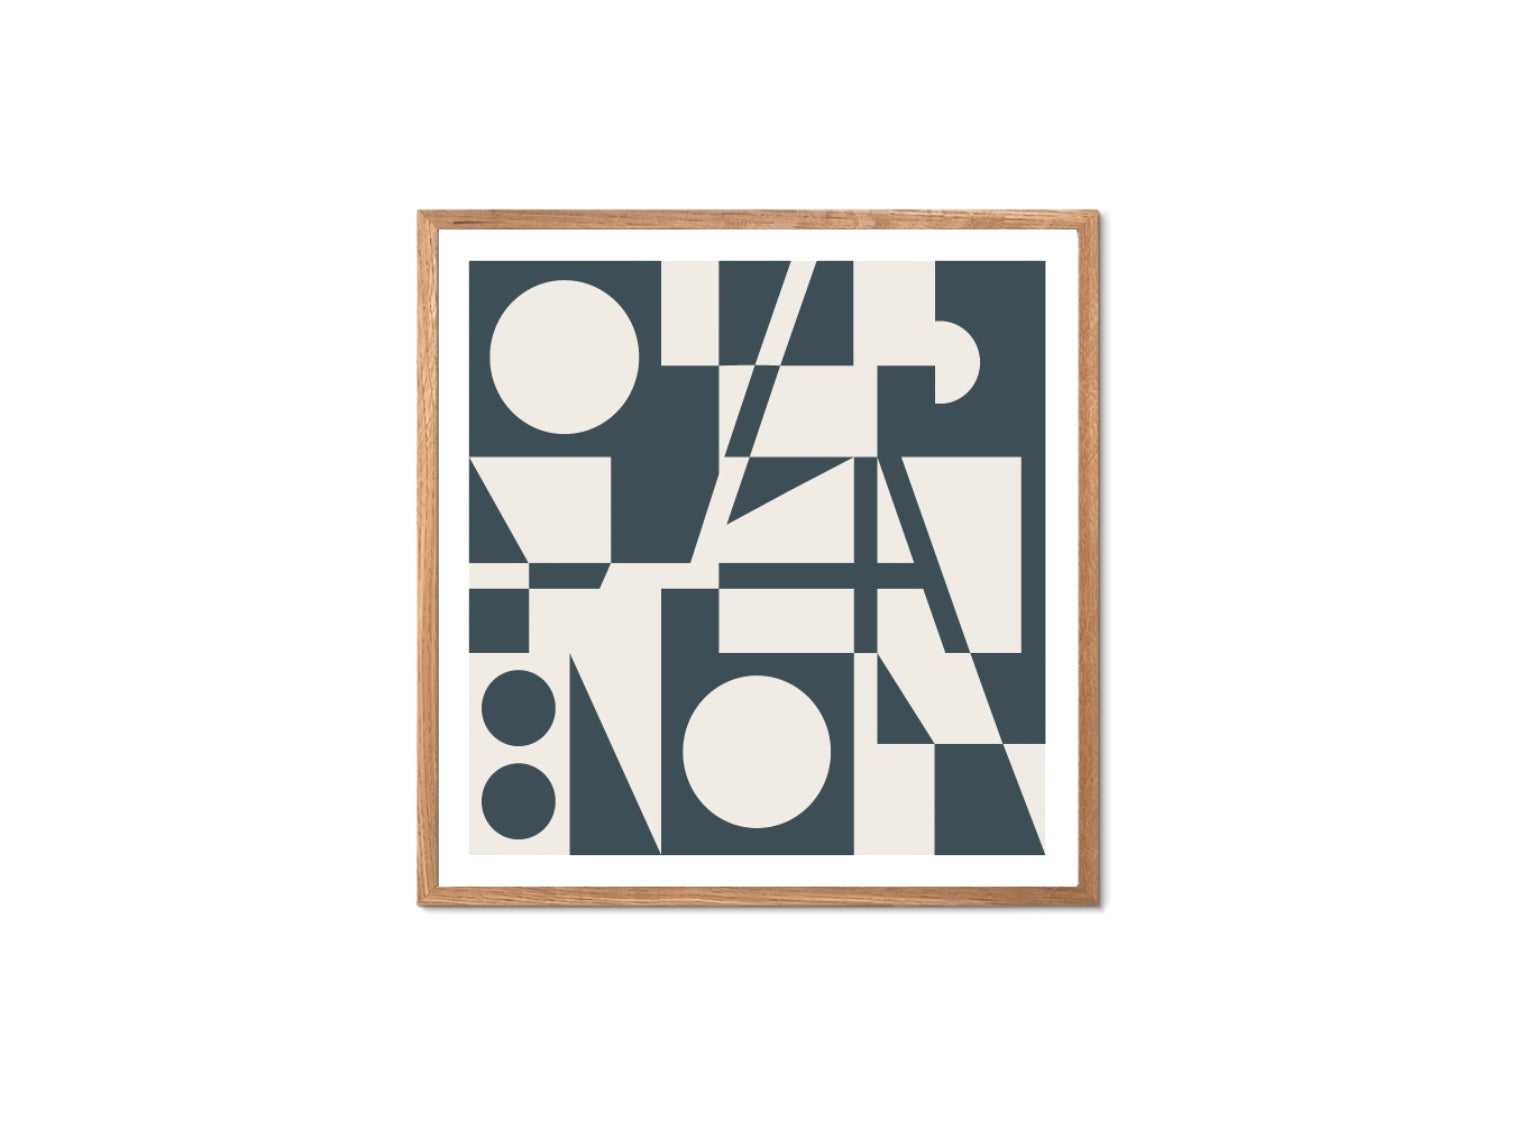 Subscription_OMNI_Rune_Elmegaard_Art_Crane_2_Danish_design_handmade_natural_oak_classic_playful_calm_atmospherics